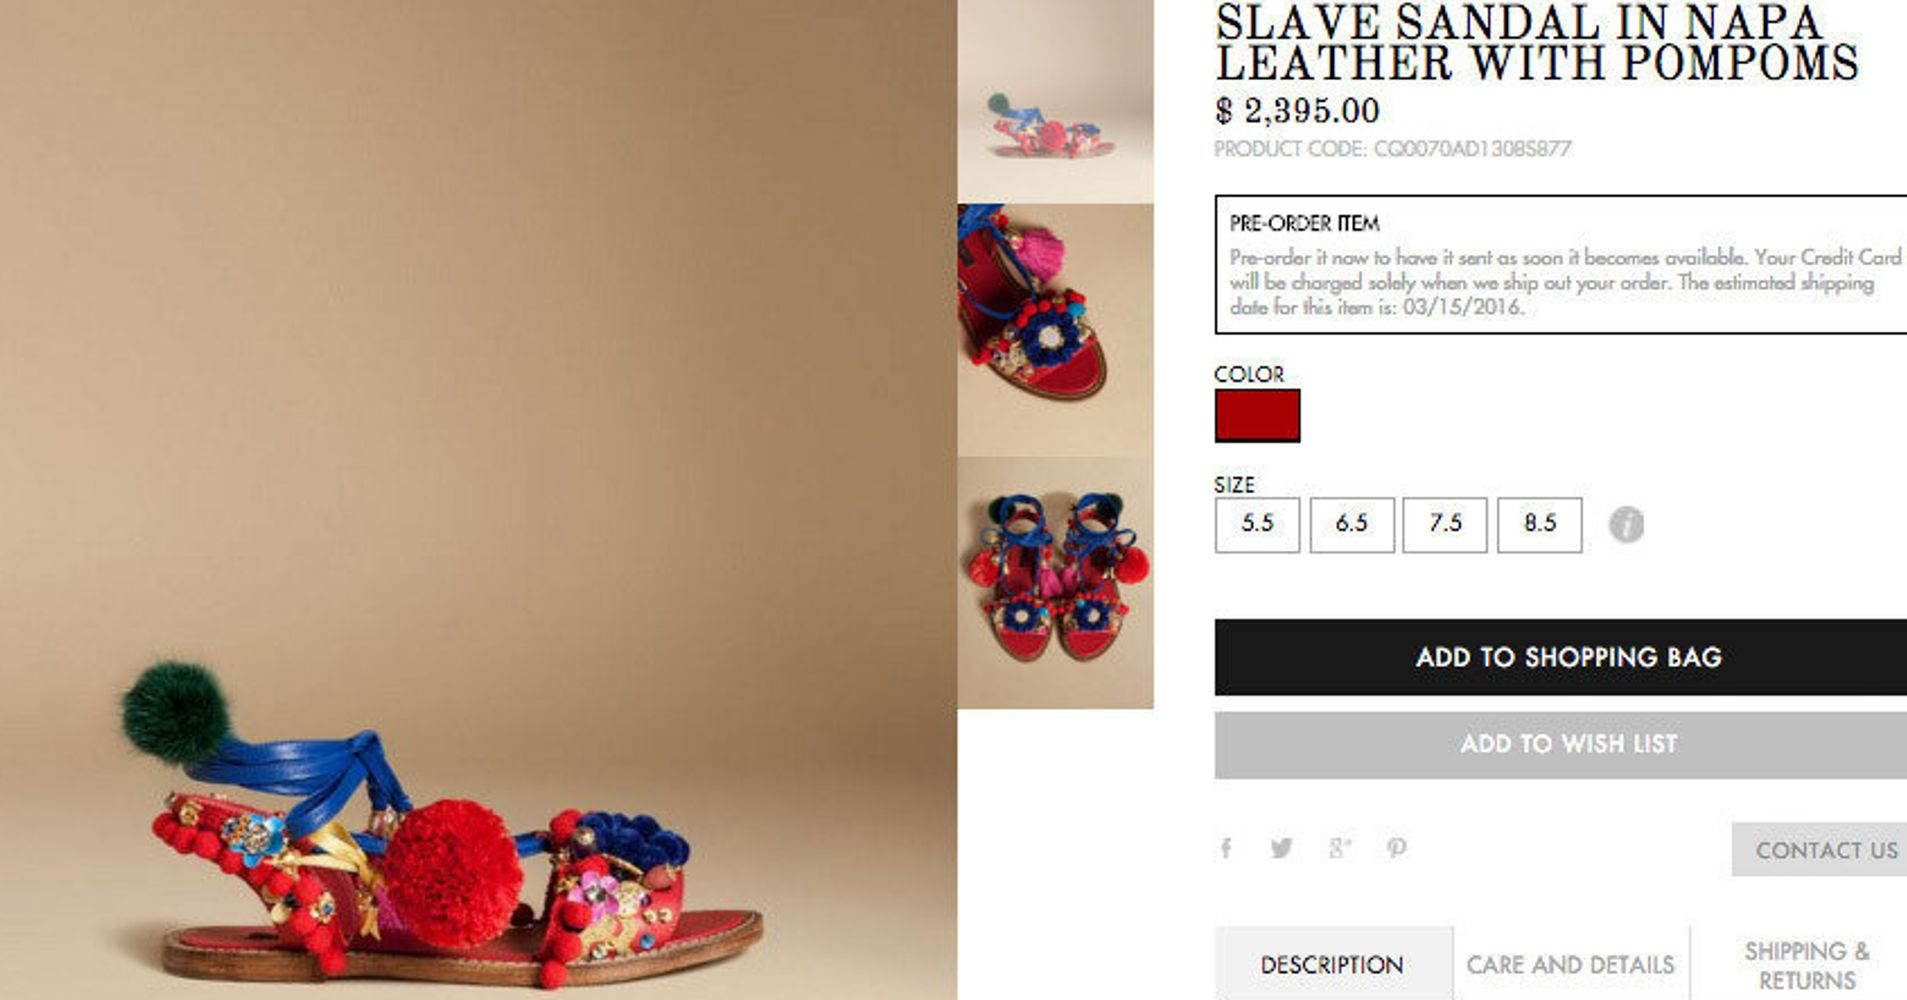 54b21340 Dolce & Gabbana Sells 'Slave Sandals' On Its Website | HuffPost Life